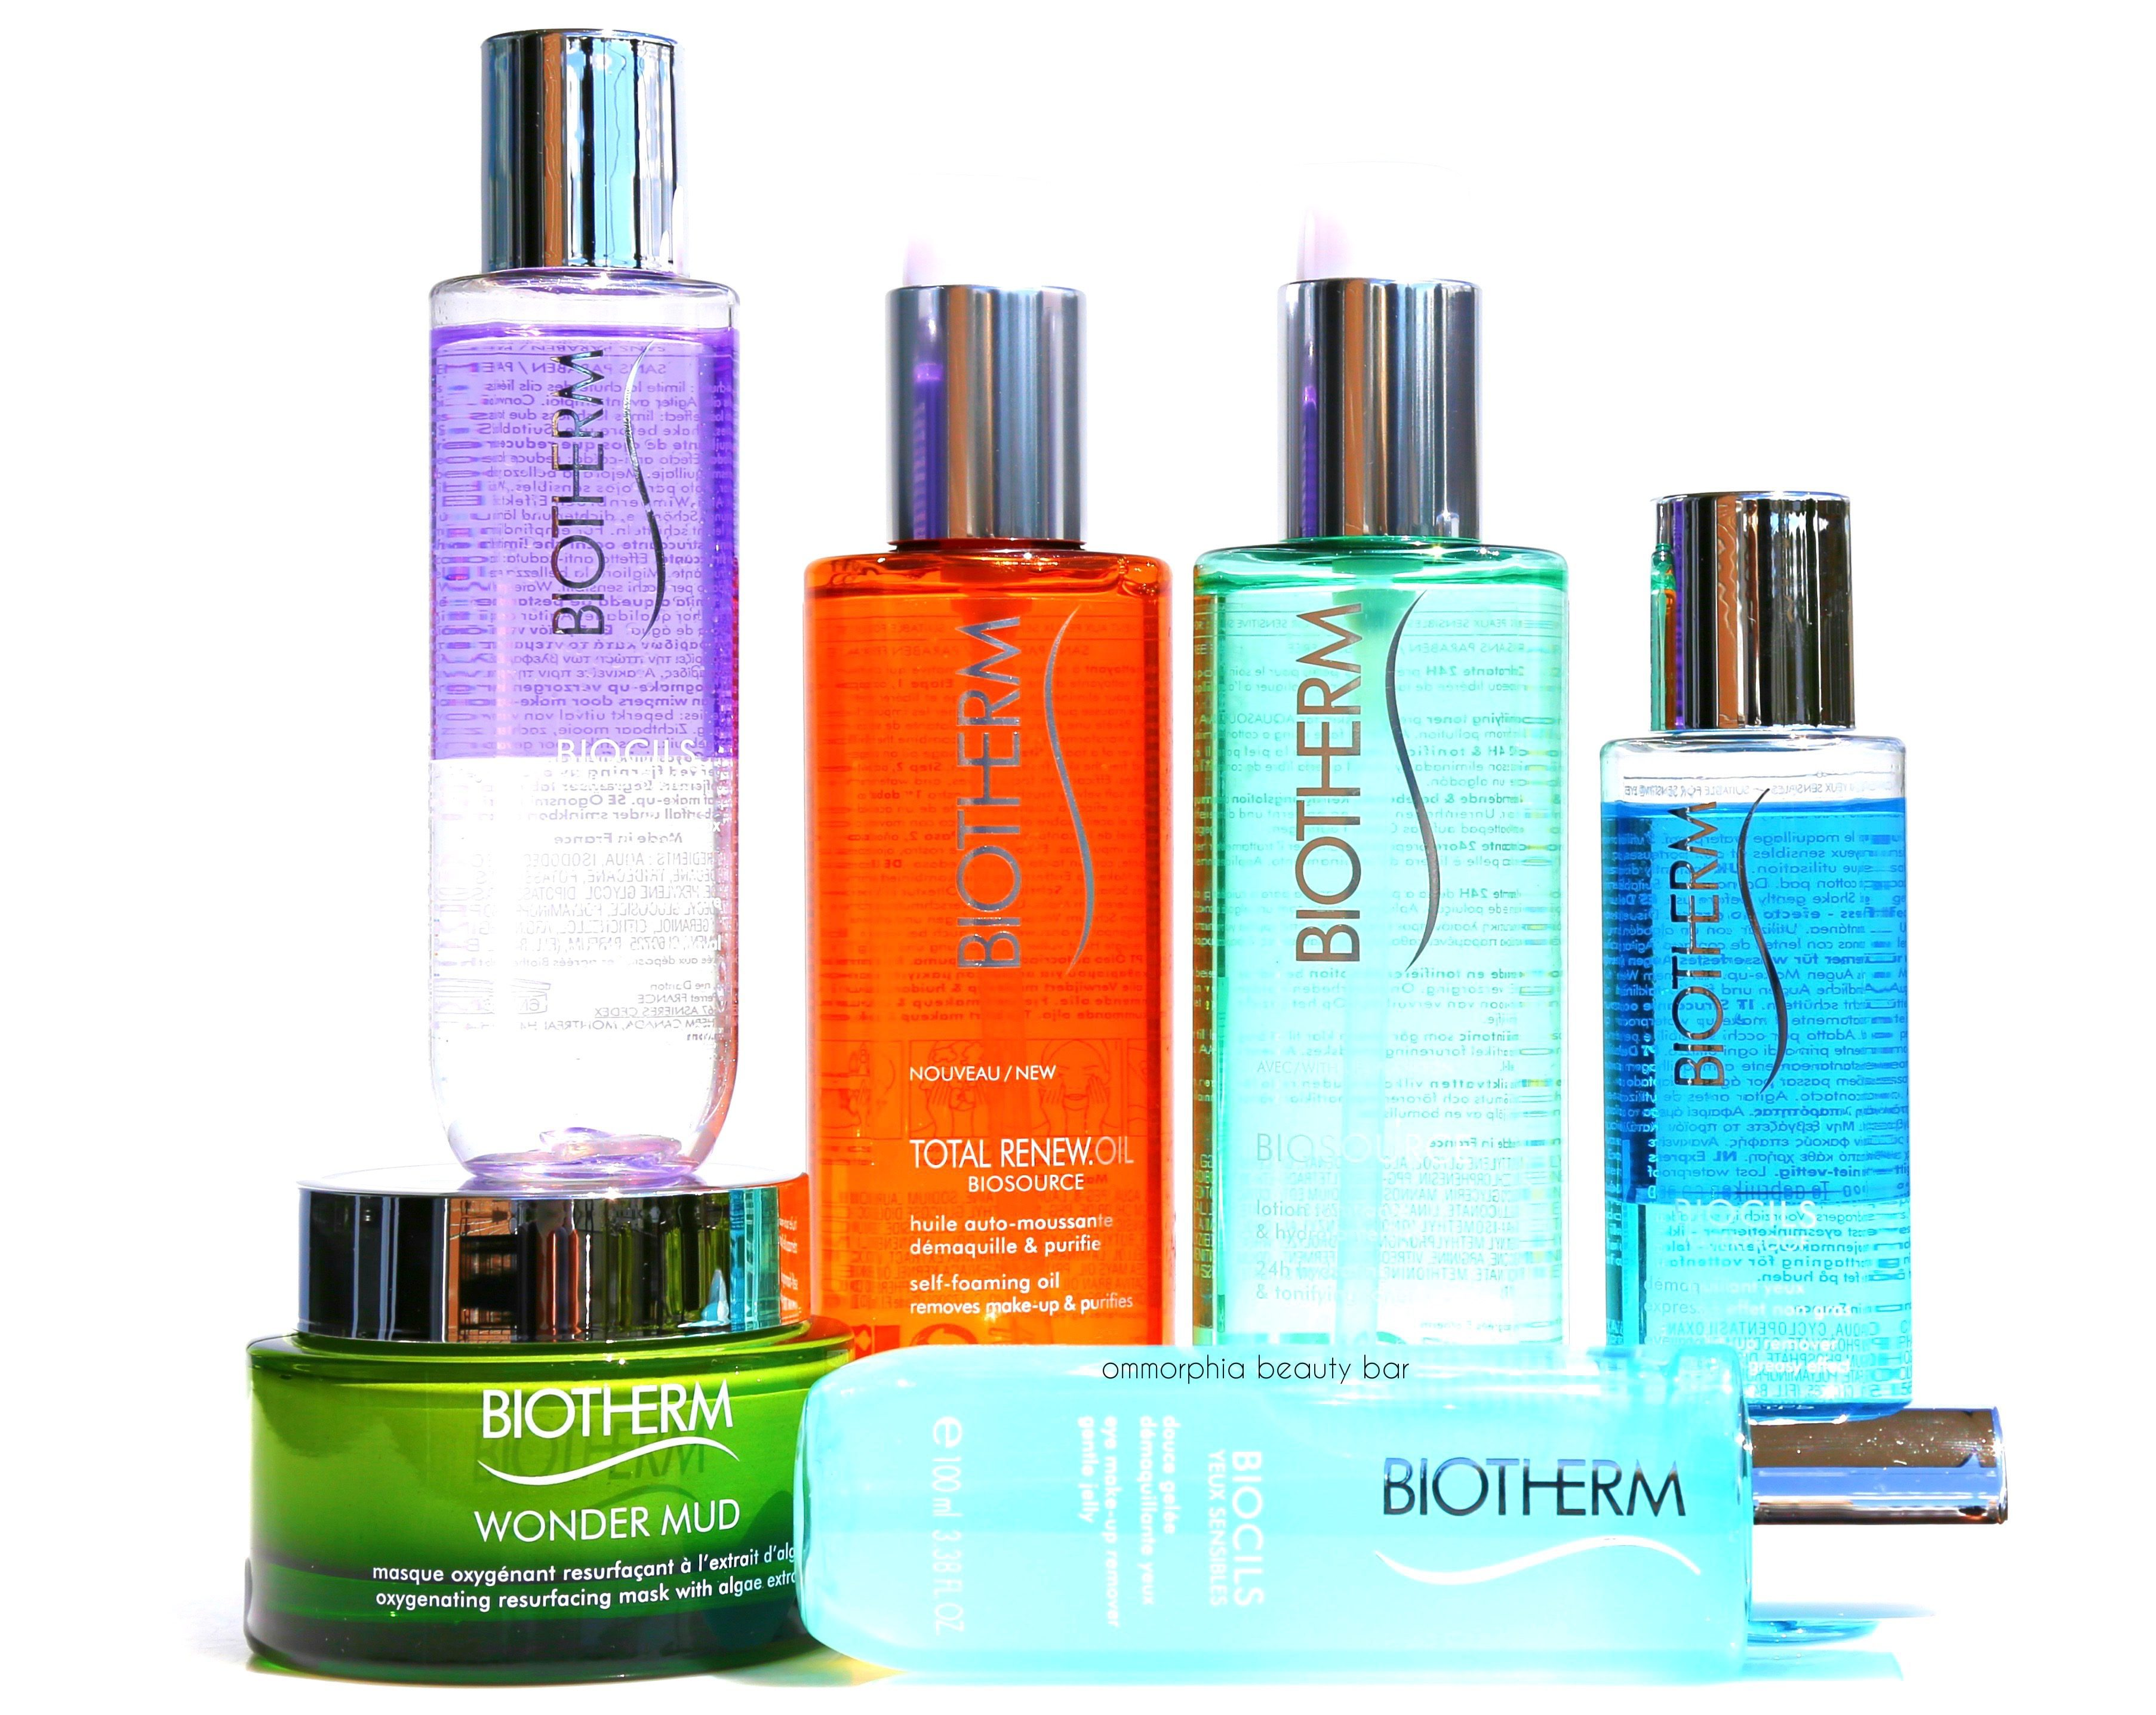 BIOTHERM MAKE UPS, BIOTHERM COSMETICS, BIOTHERM PERFUMES